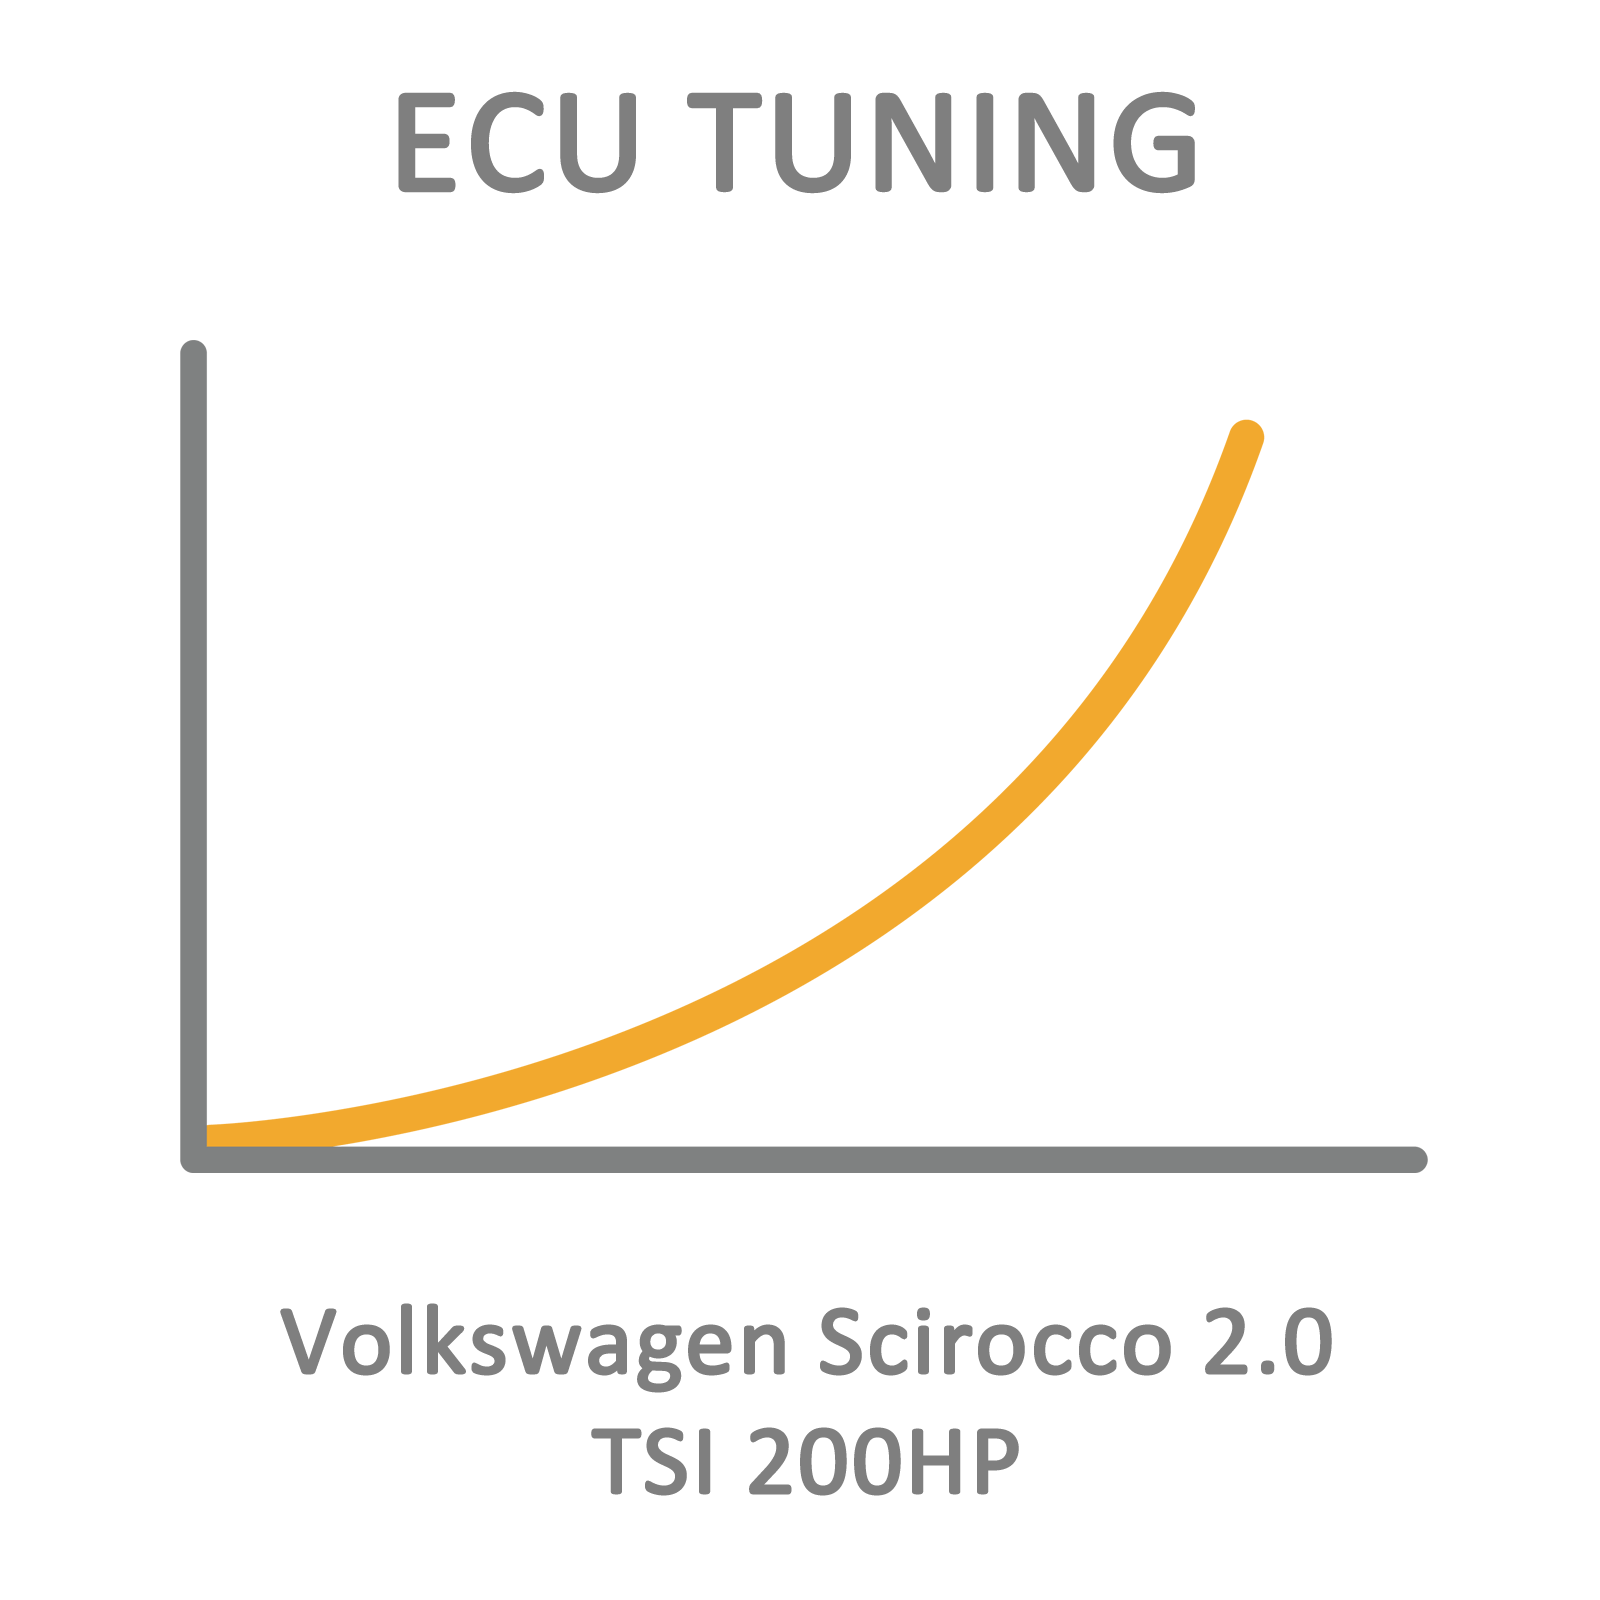 Volkswagen Scirocco 2.0 TSI 200HP ECU Tuning Remapping